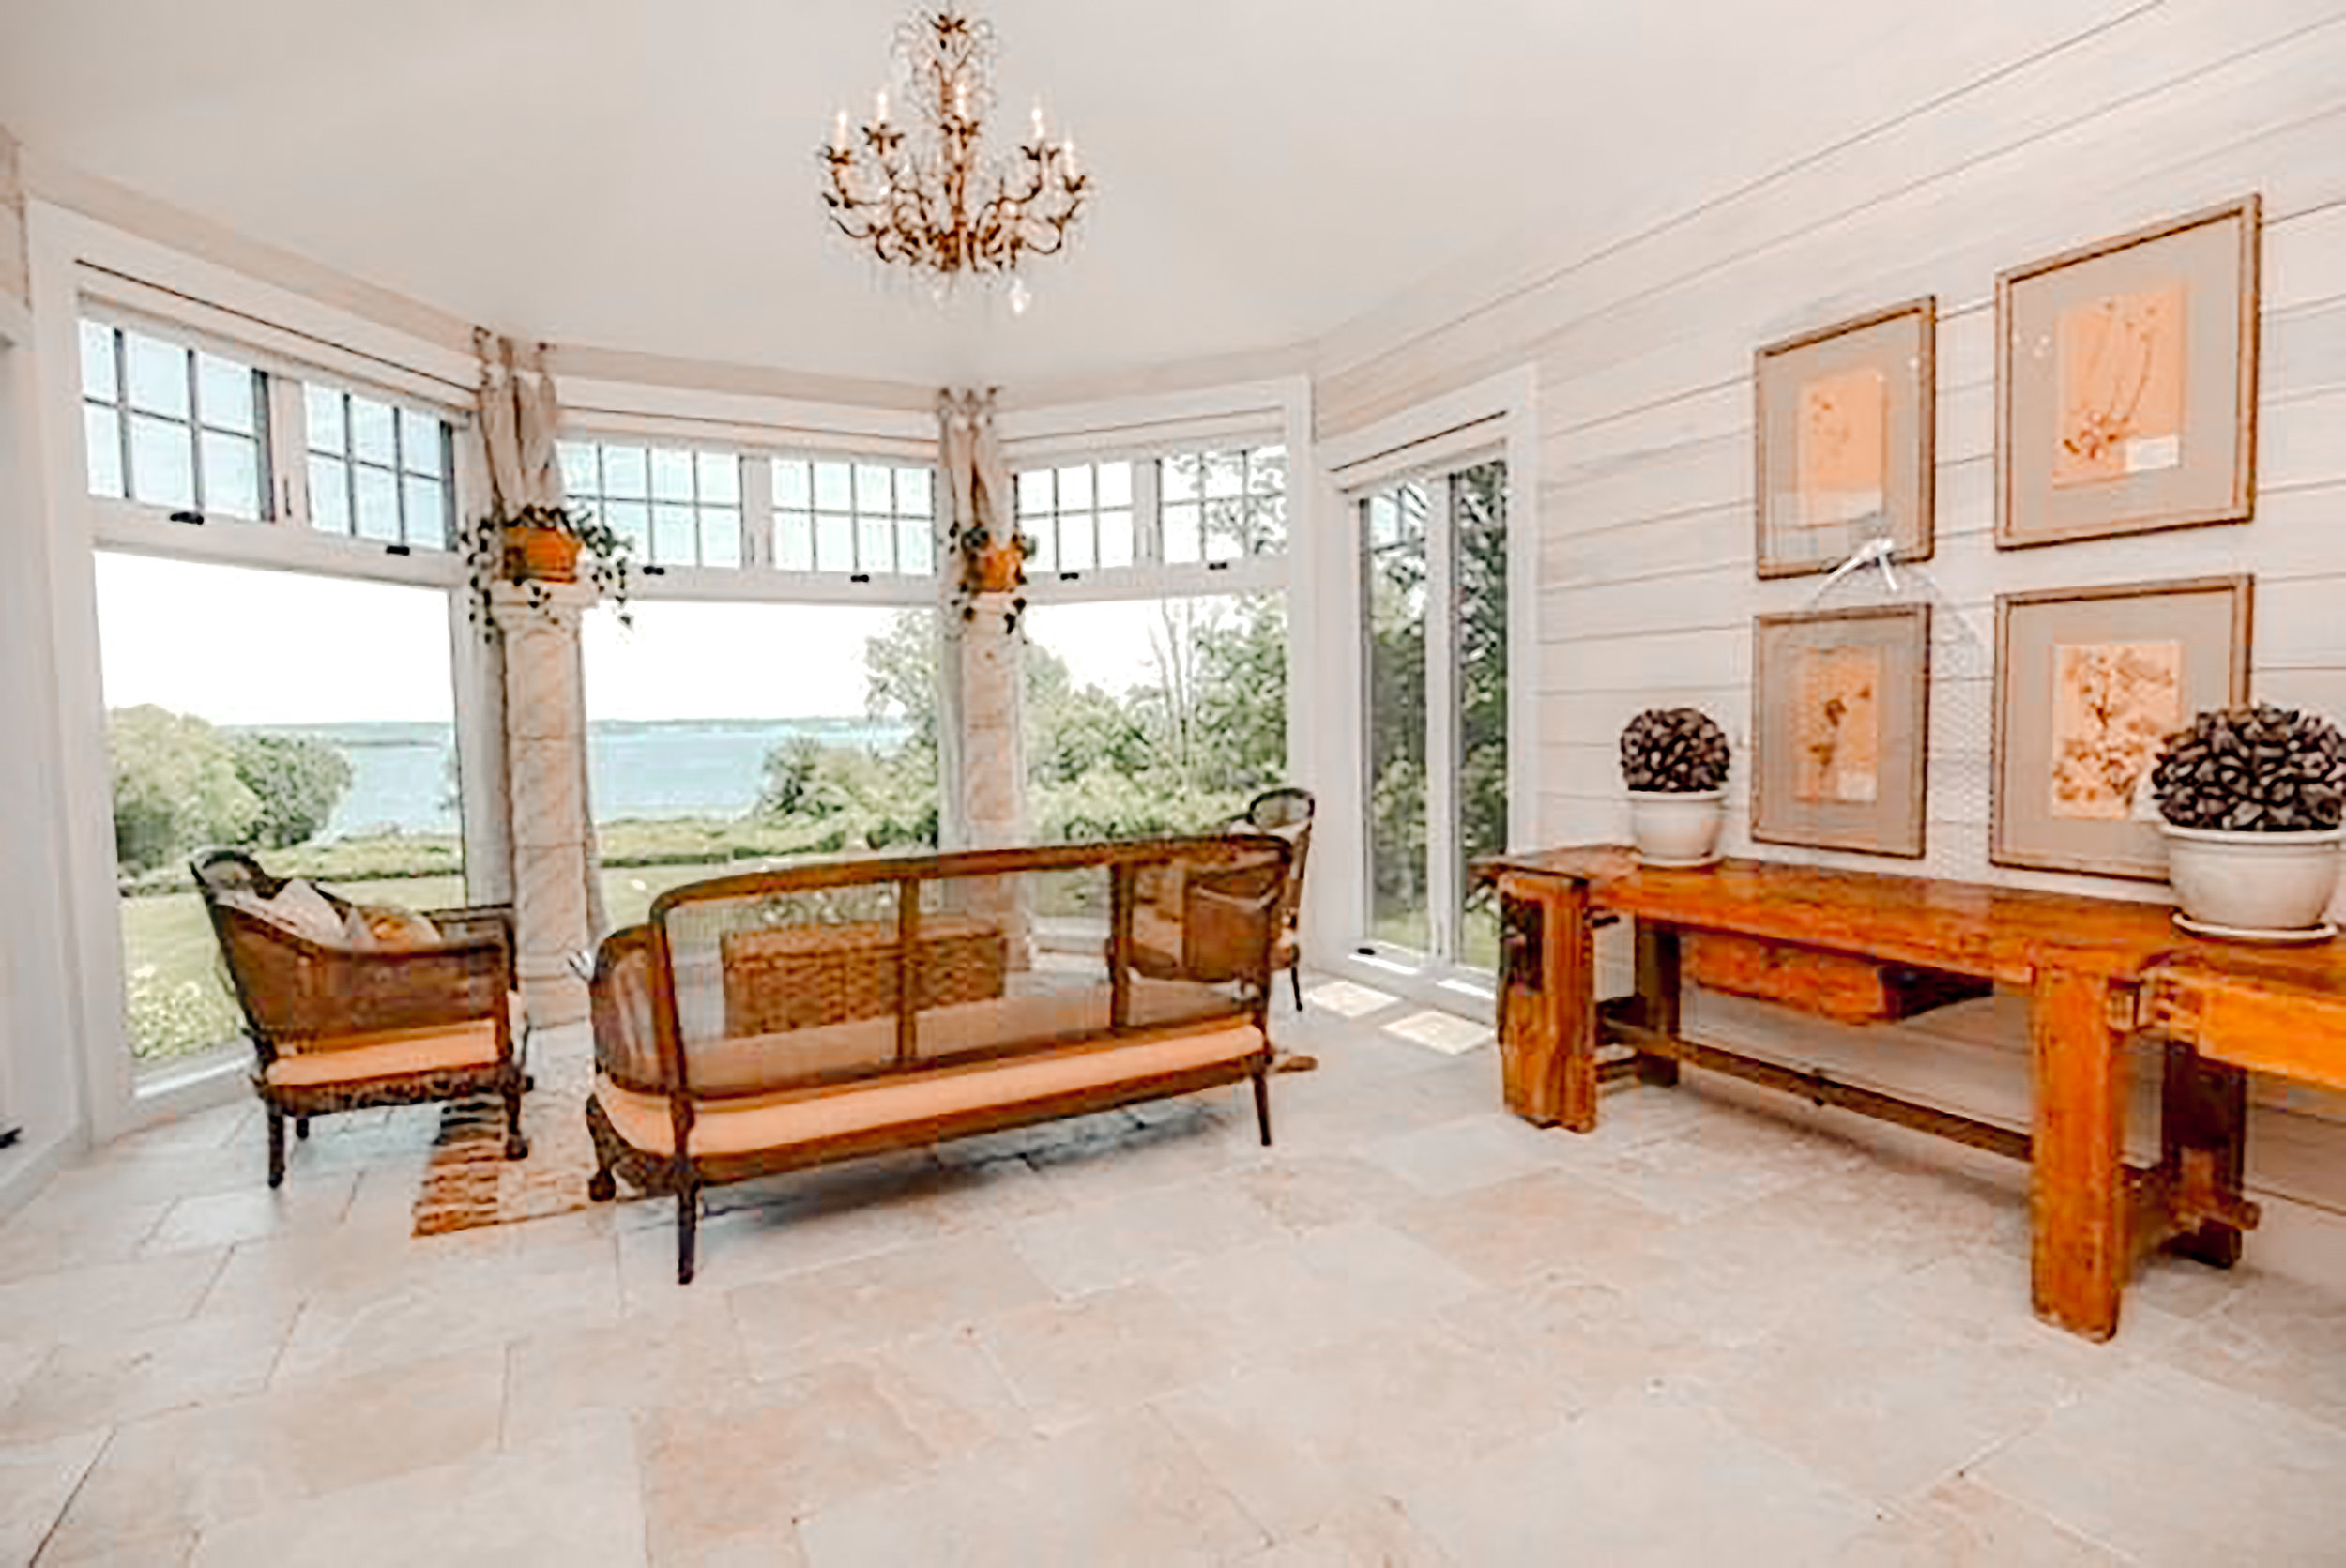 Luxe_and_Livable_Interior_Design_Blog_by_Maloney_Interiors_Newport_Rhode_Island_Gustave_White_Sotheby_Real_Estate_14.jpg